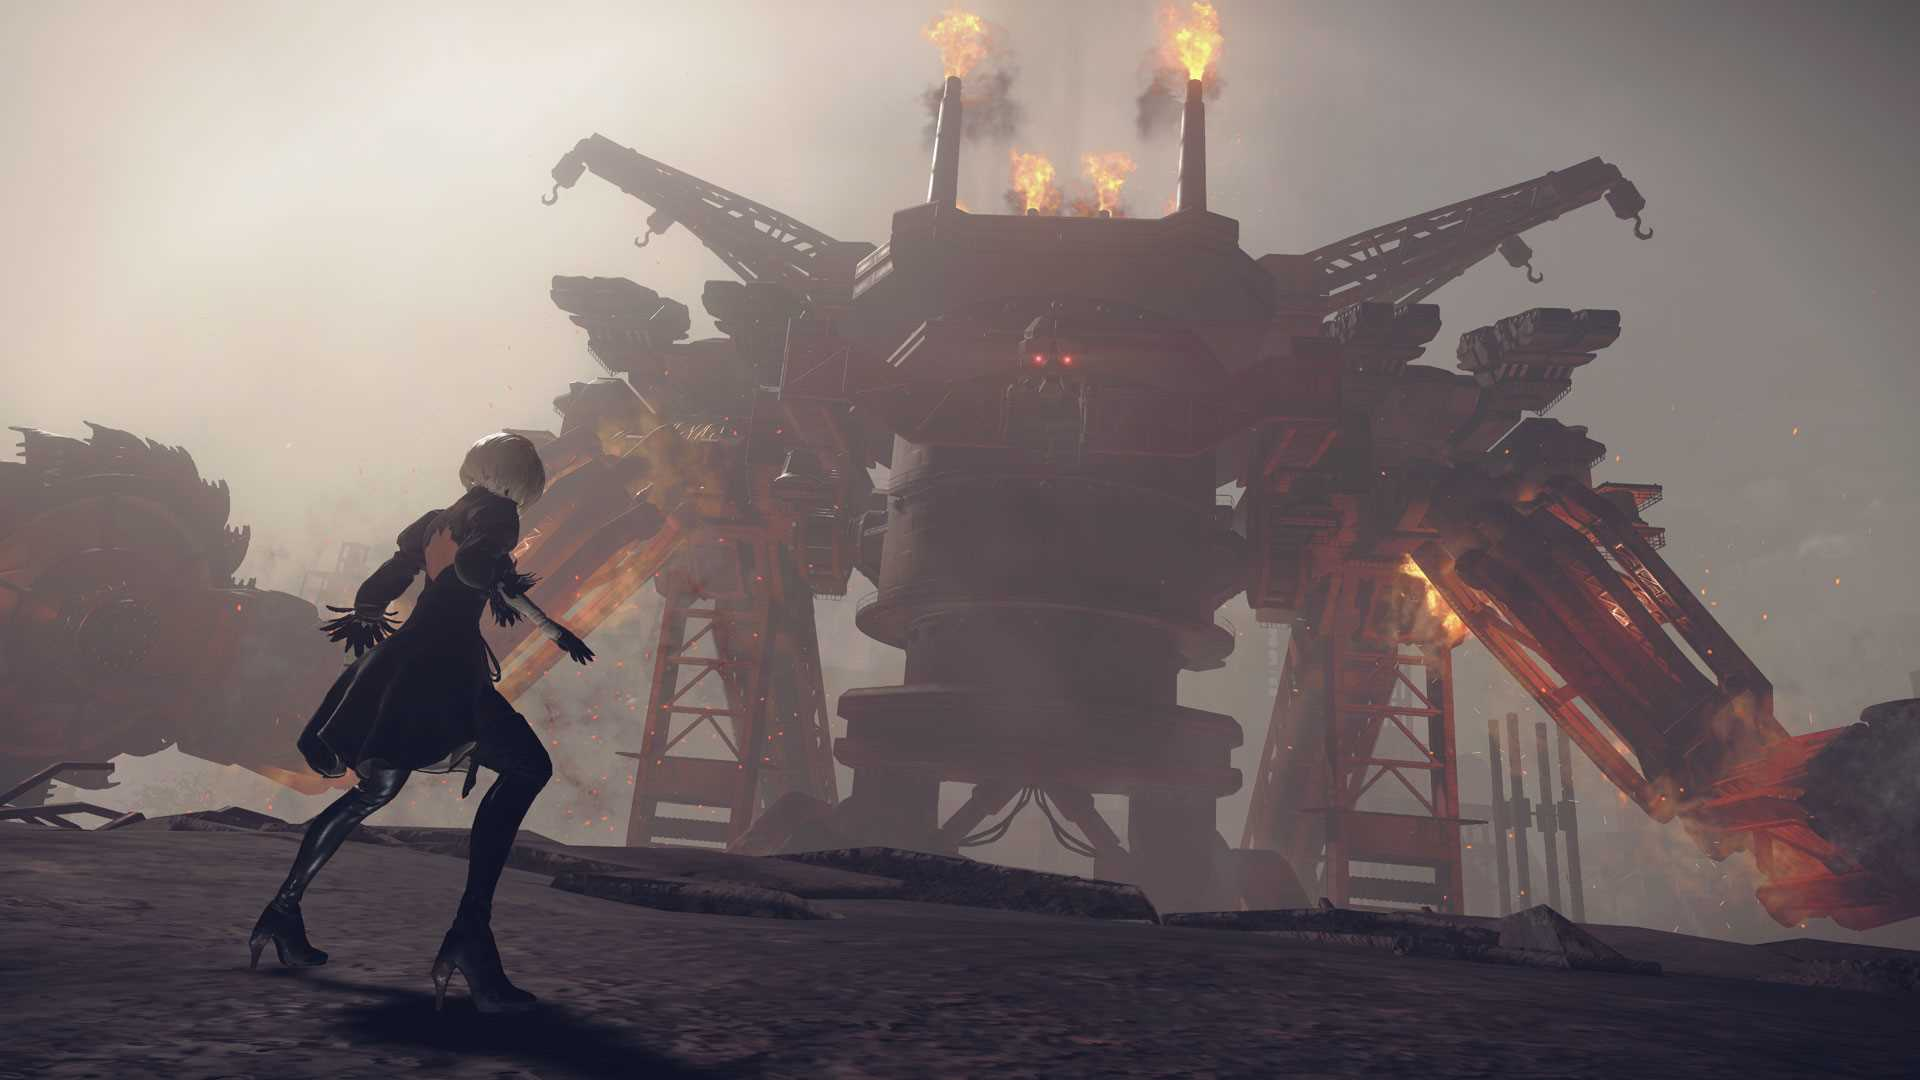 Nier_Screenshot_1_08_1481192484.11.2016